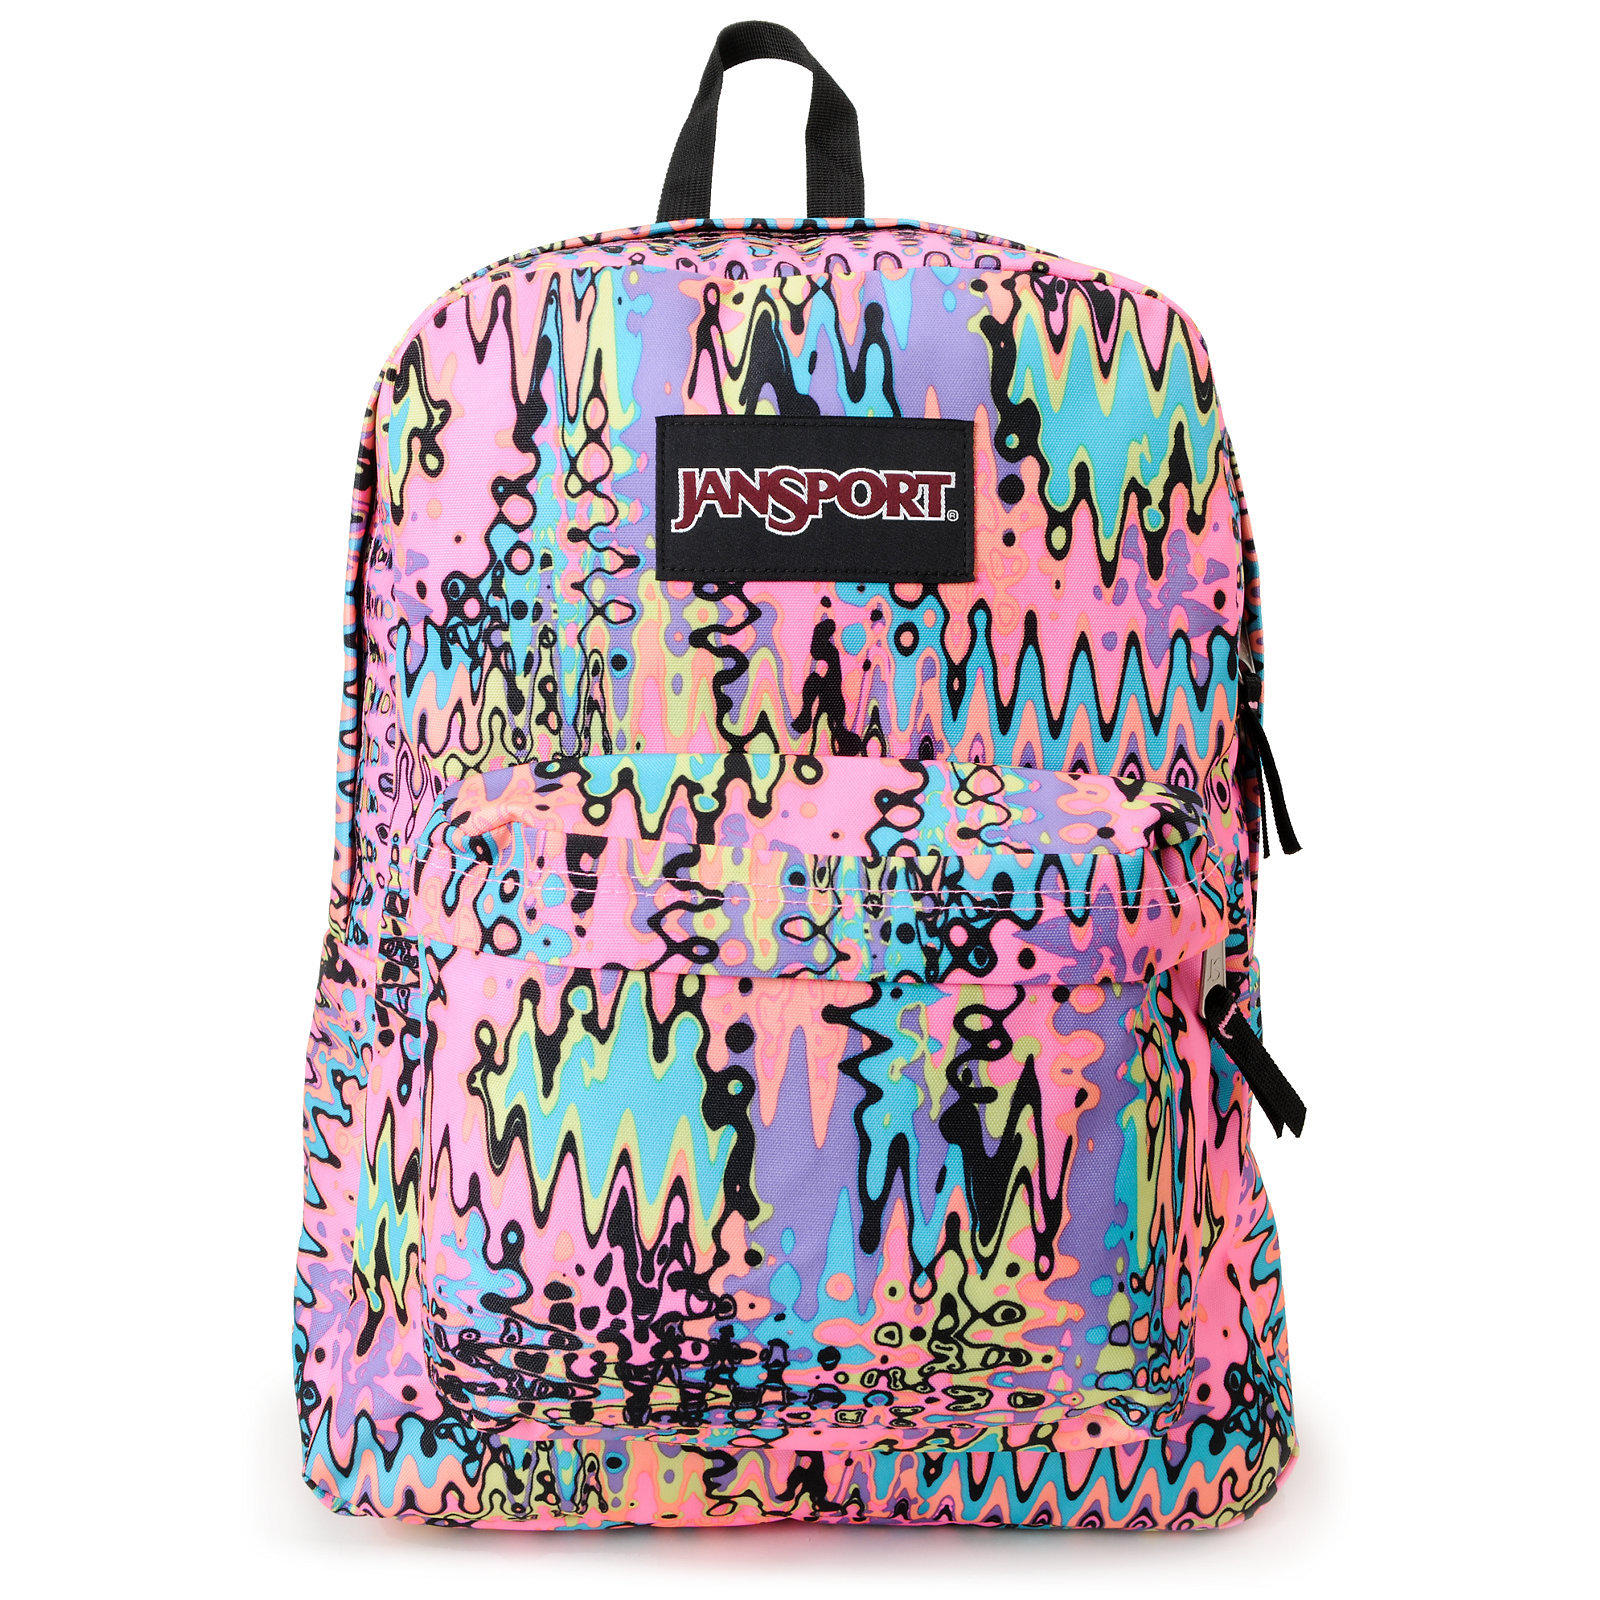 Cute Jansport Backpacks For Girls 8H65iYLs